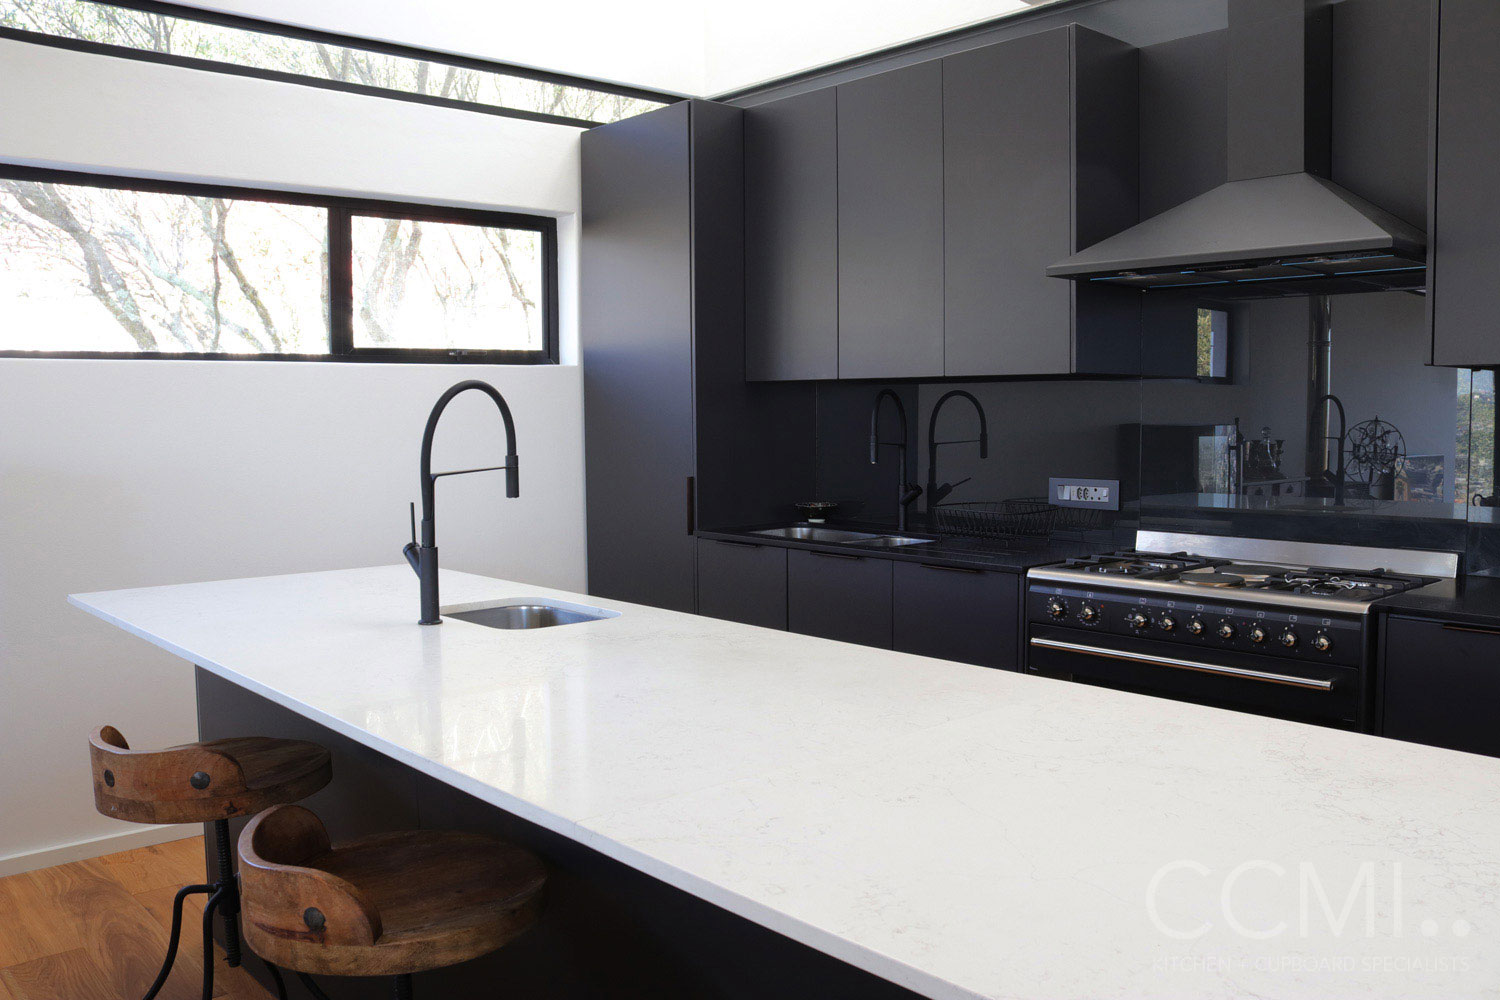 a matte black mixer and prep bowl is set in the white marbled kitchen island